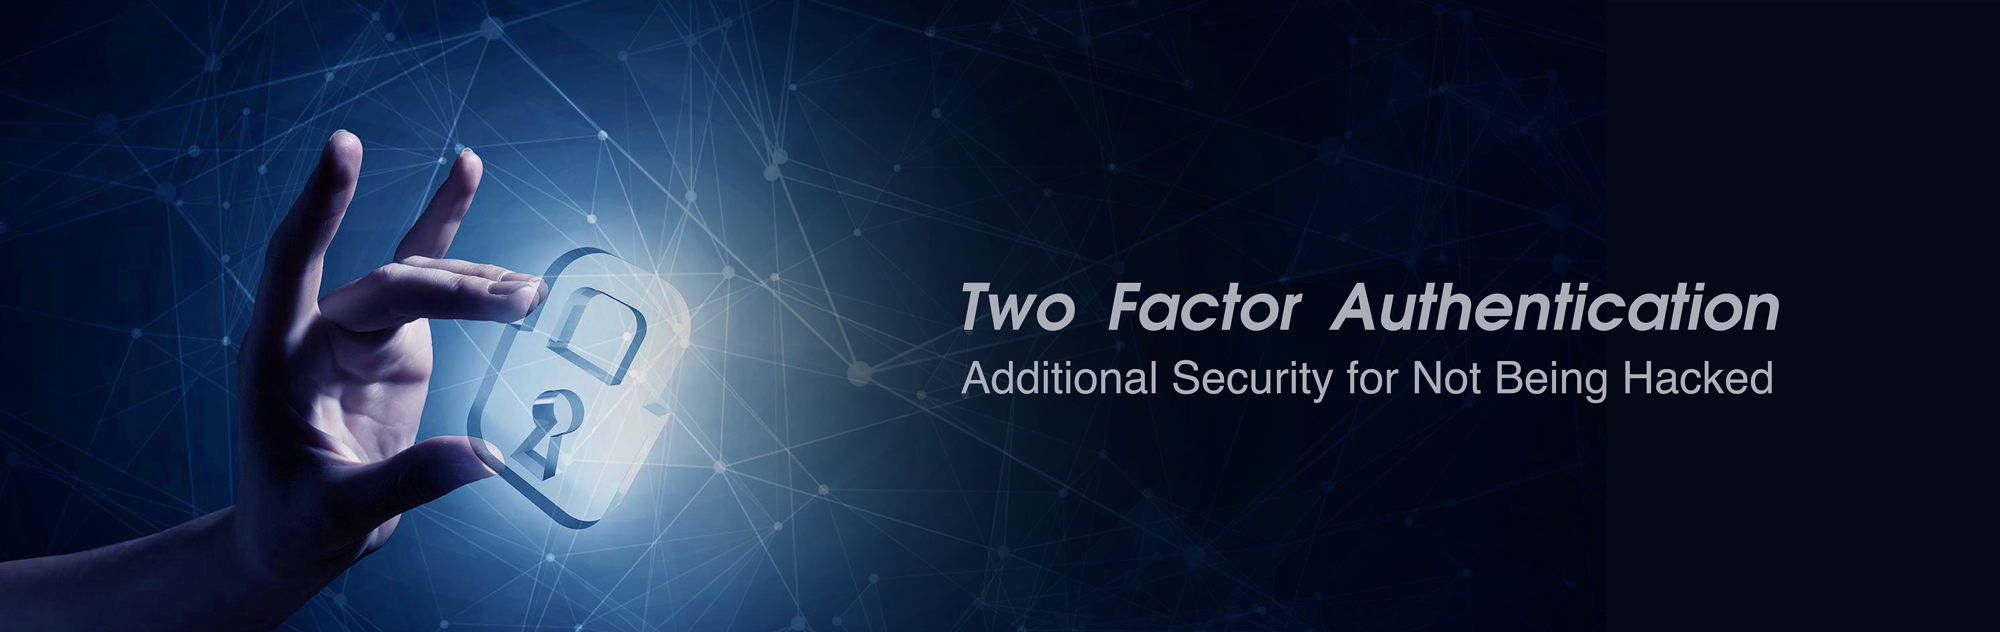 Two Factor Authentication – Additional Security for Not Being Hacked